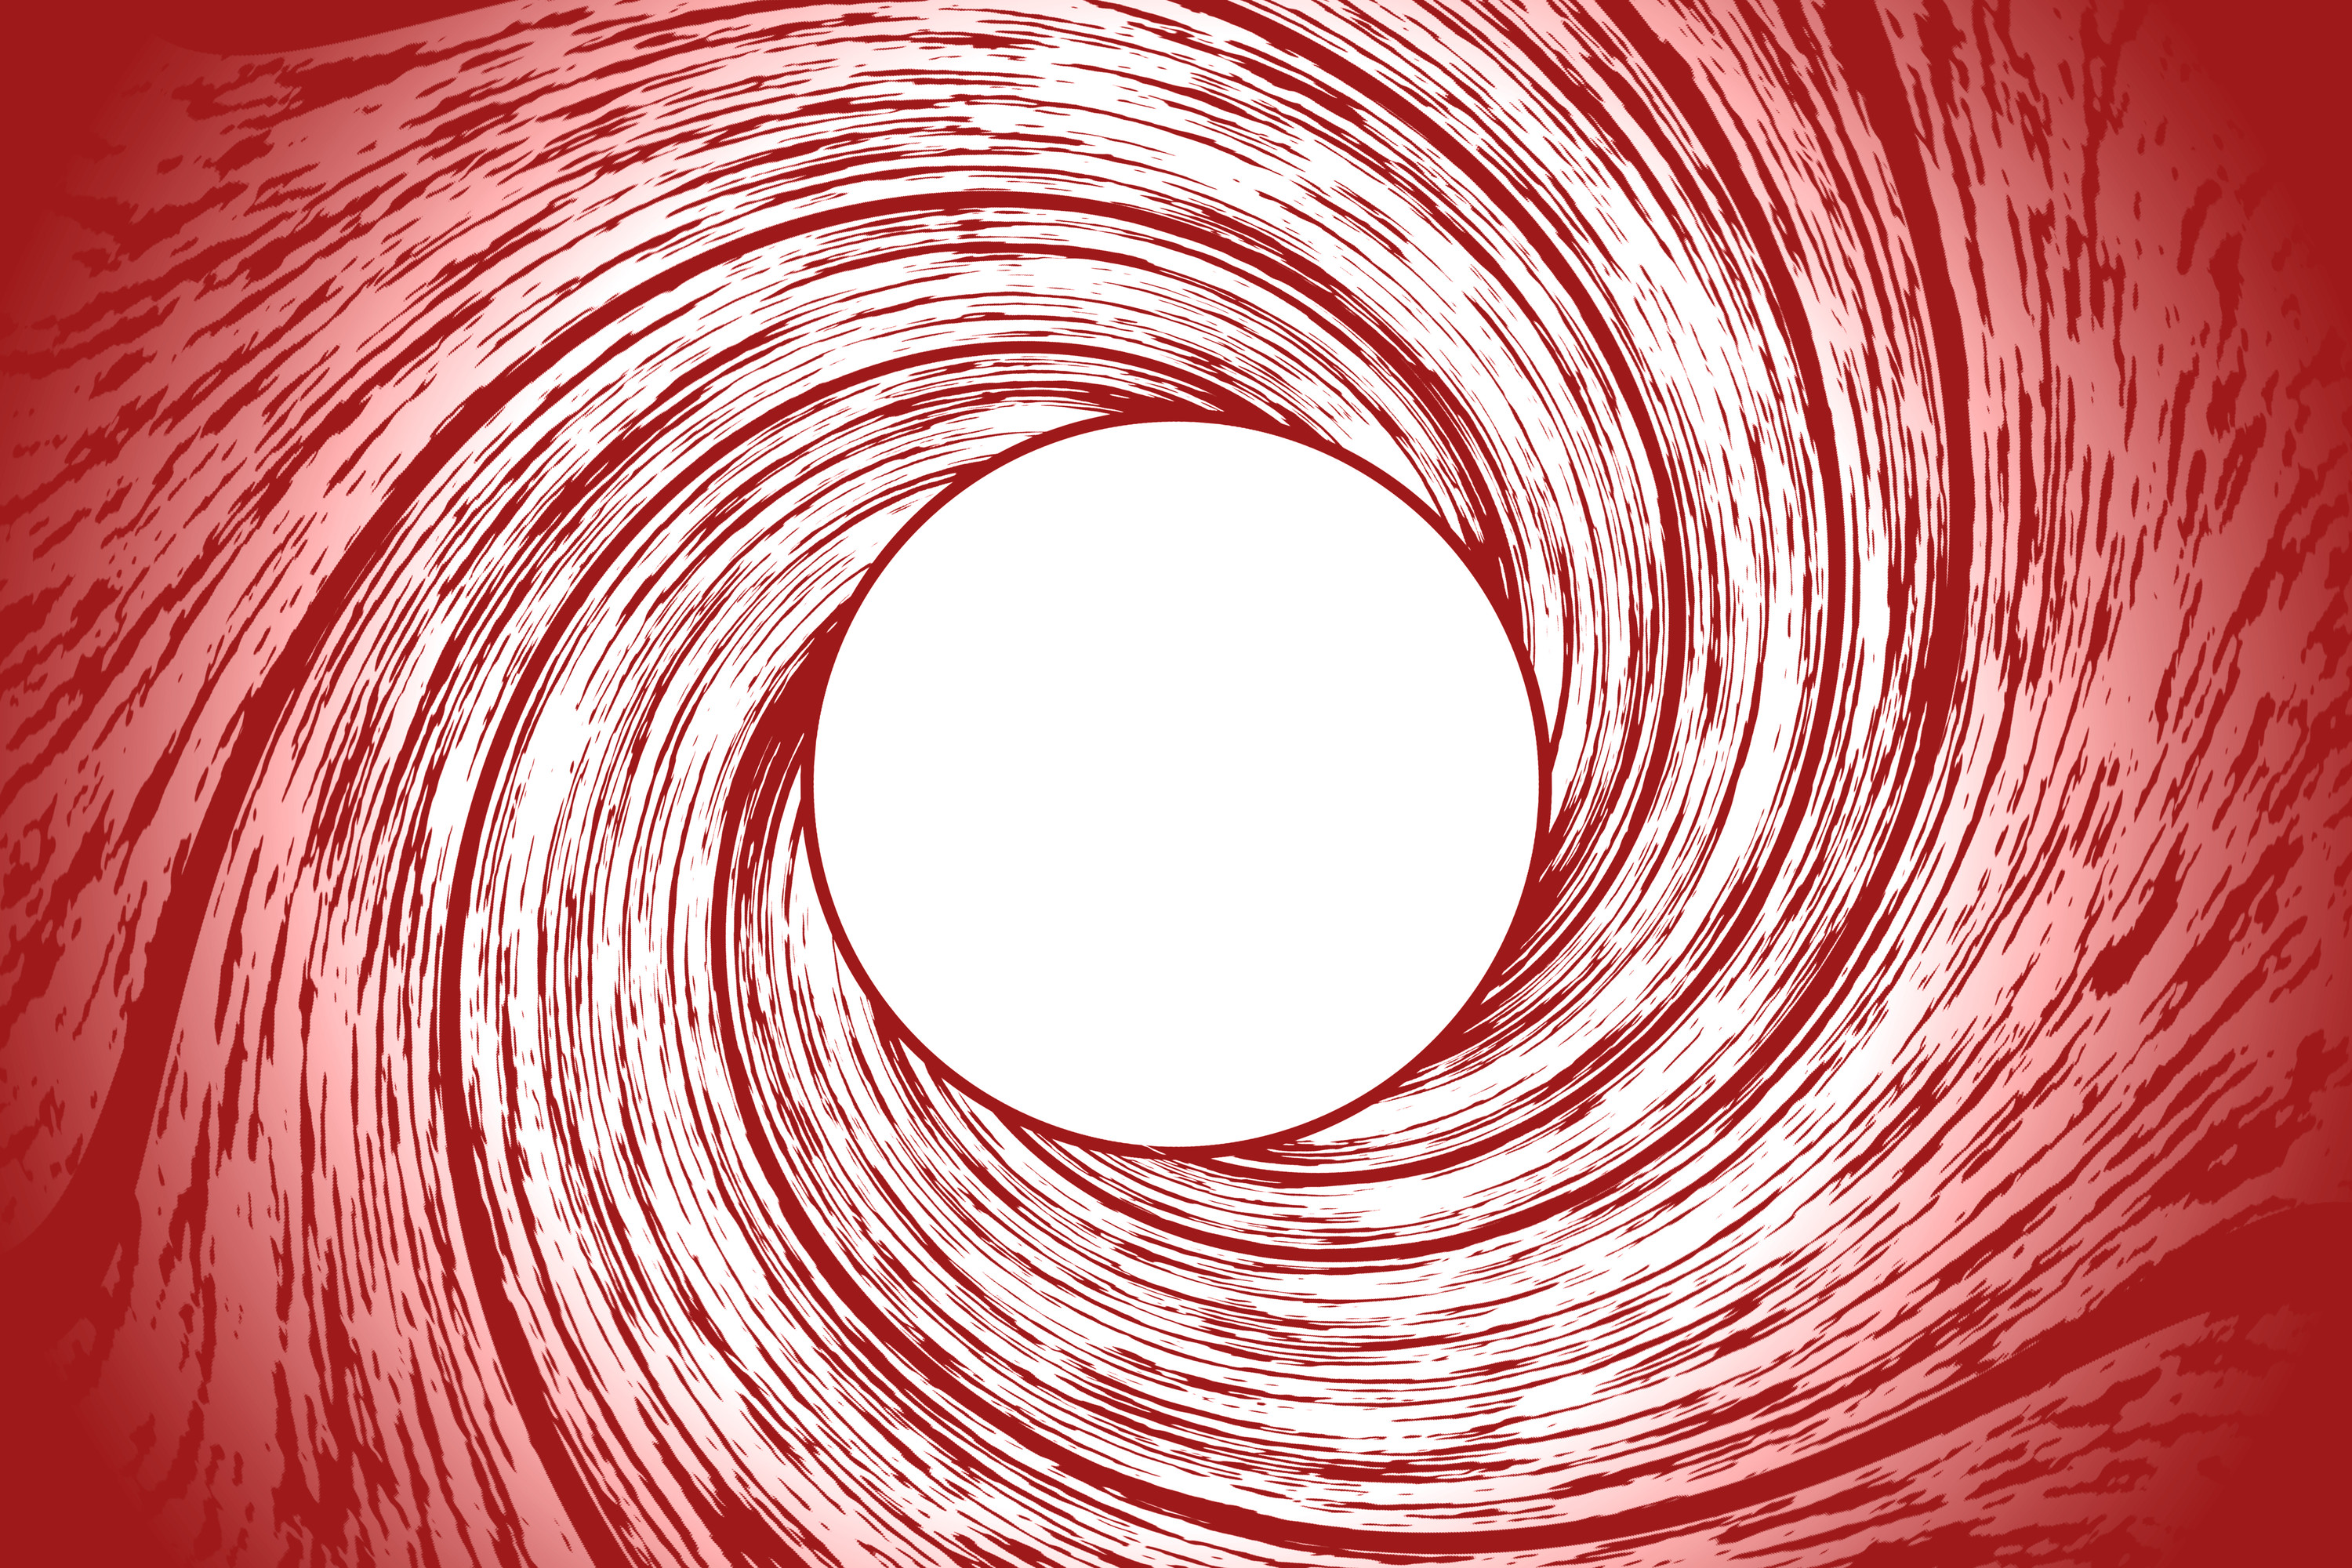 Red spiral like the boring inside a gun.